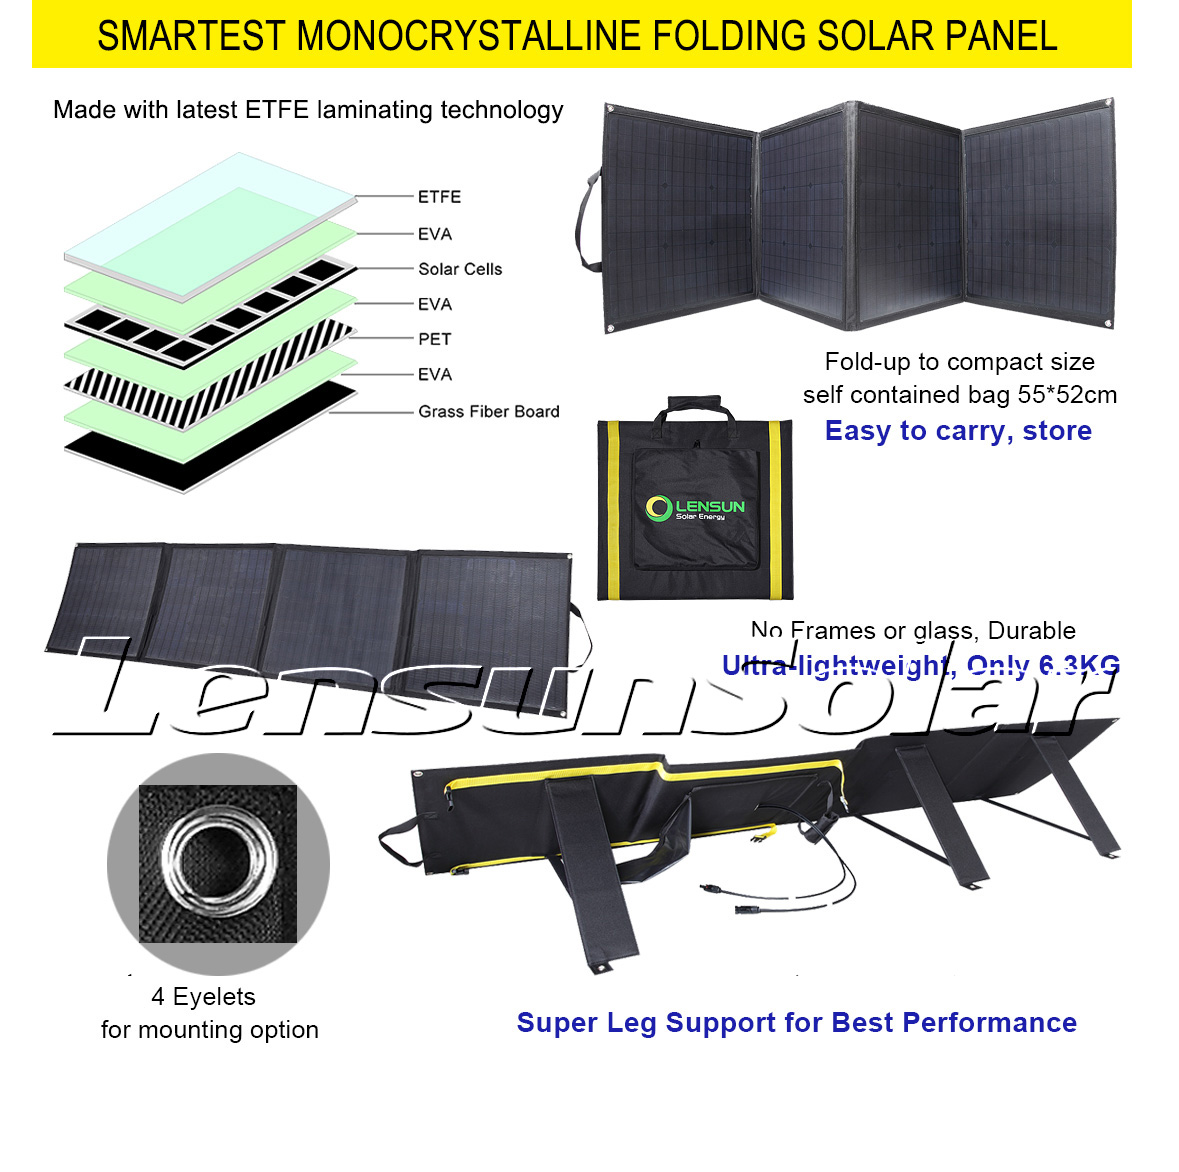 Lensun 160w 4 X 40w 12v Etfe Flexible Folding Solar Panel Kit For Wiring Diagram Caravan Rv Camping Lightweight Only 56kgs 12 Lbswith 20a Controller